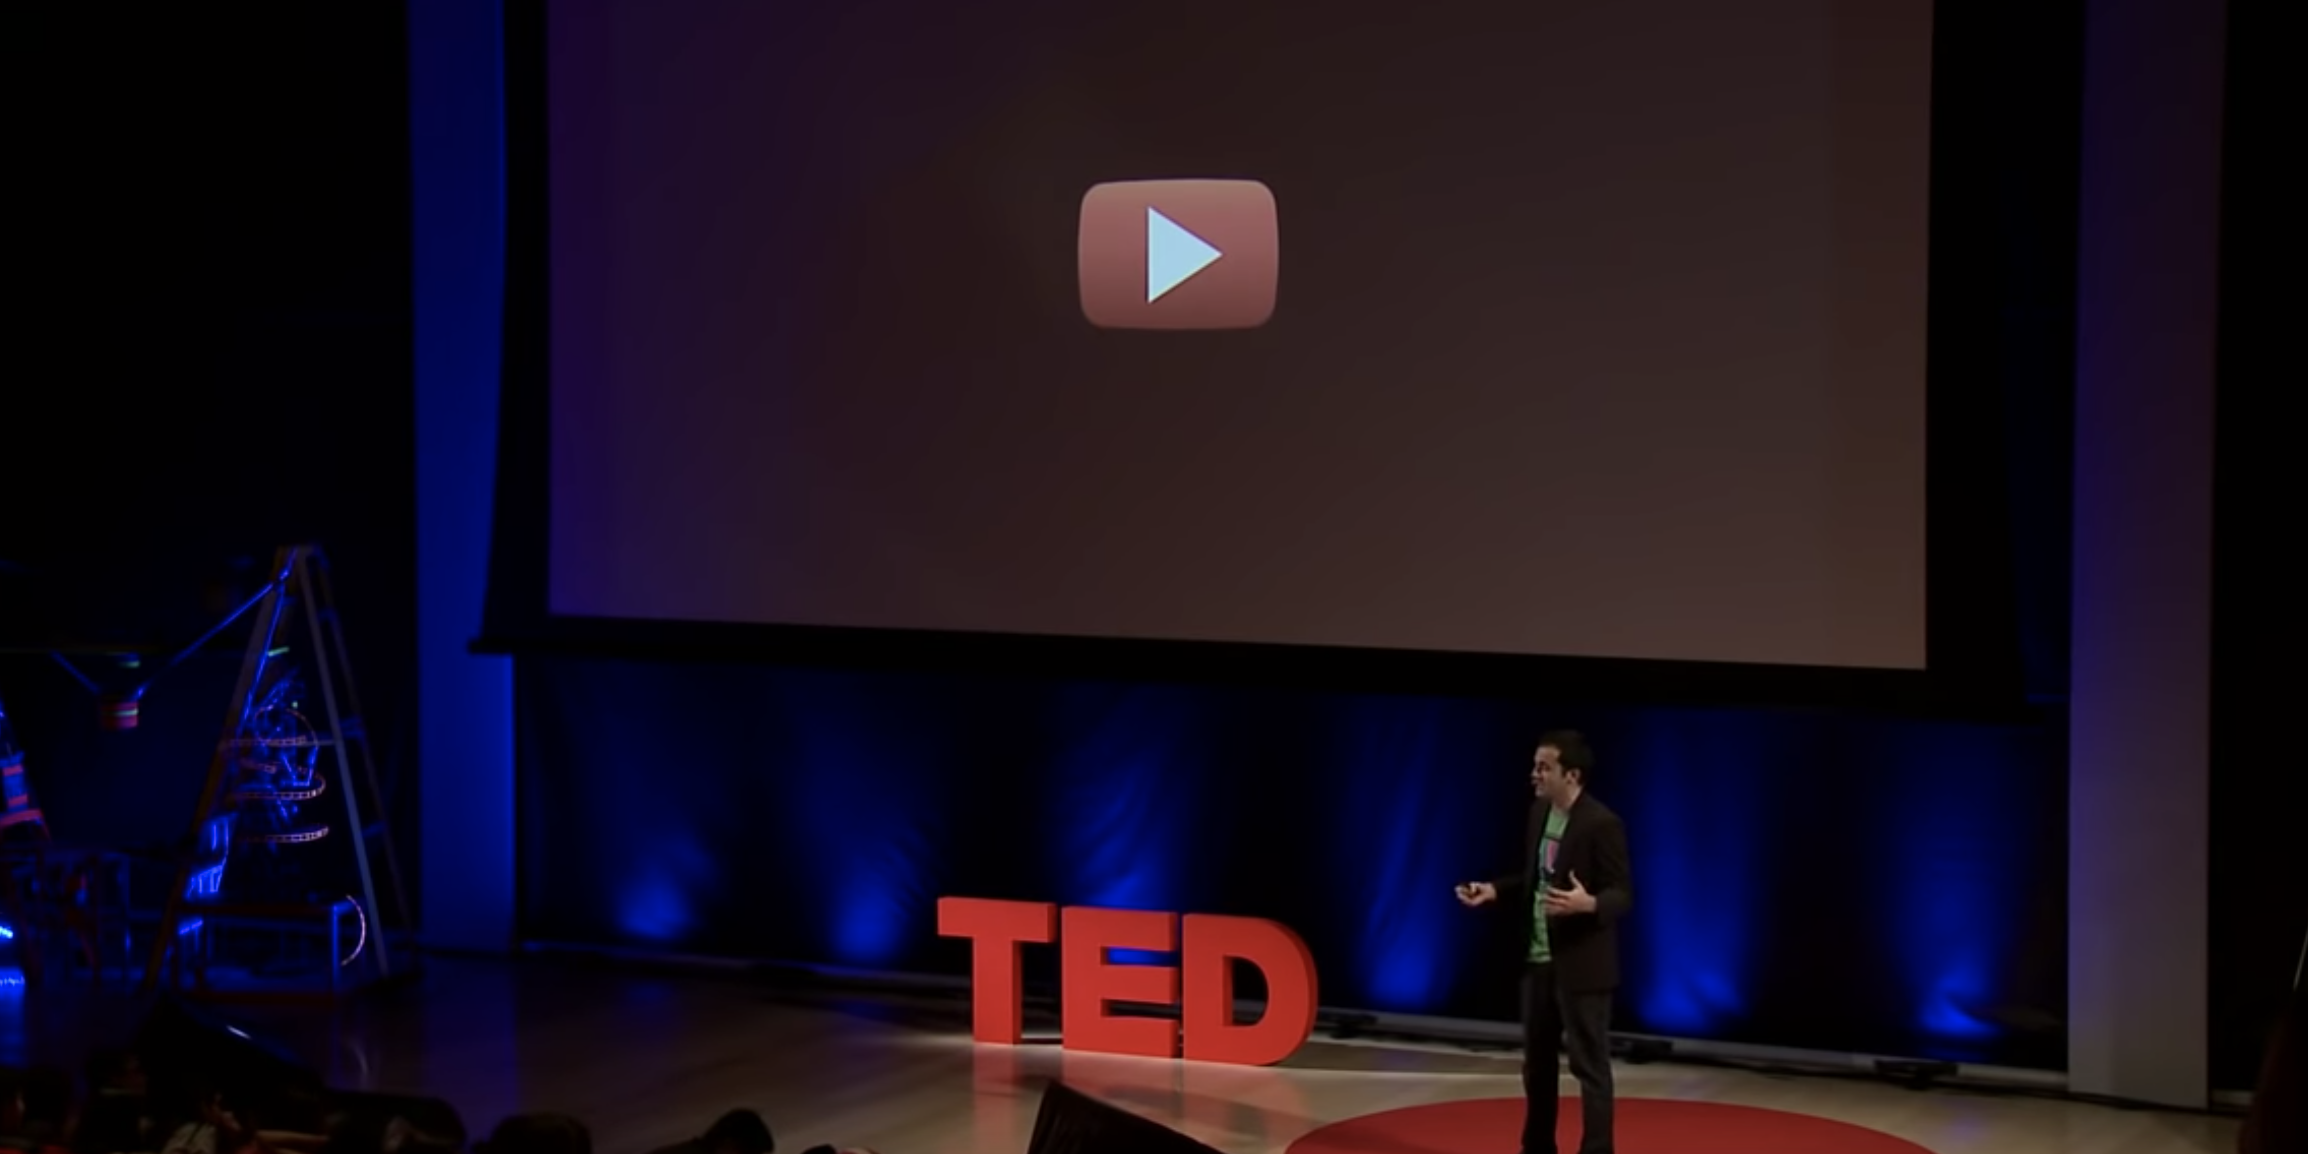 What Makes a Video Viral? [TED Talk]